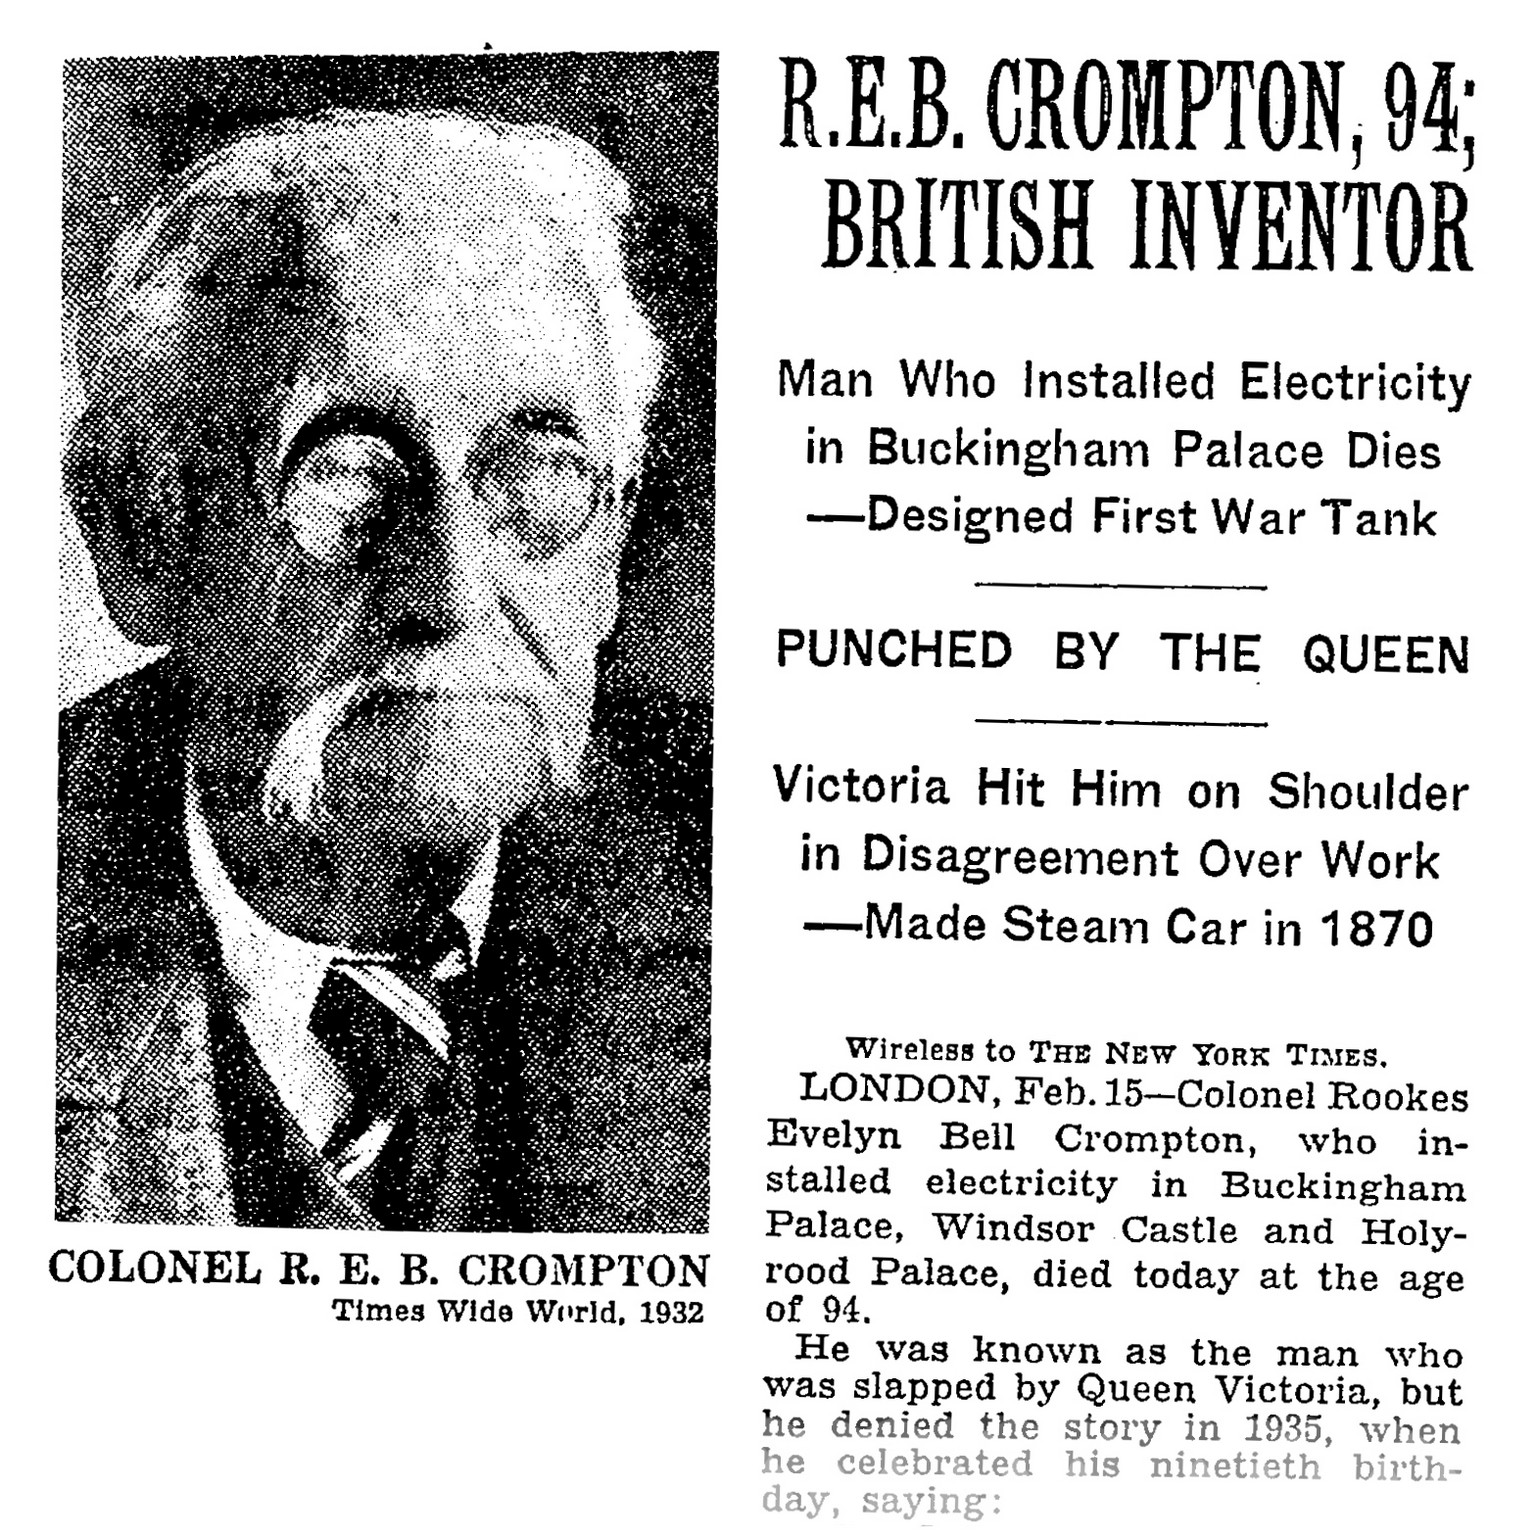 R.E.B Crompton, 94, punched by the Queen!